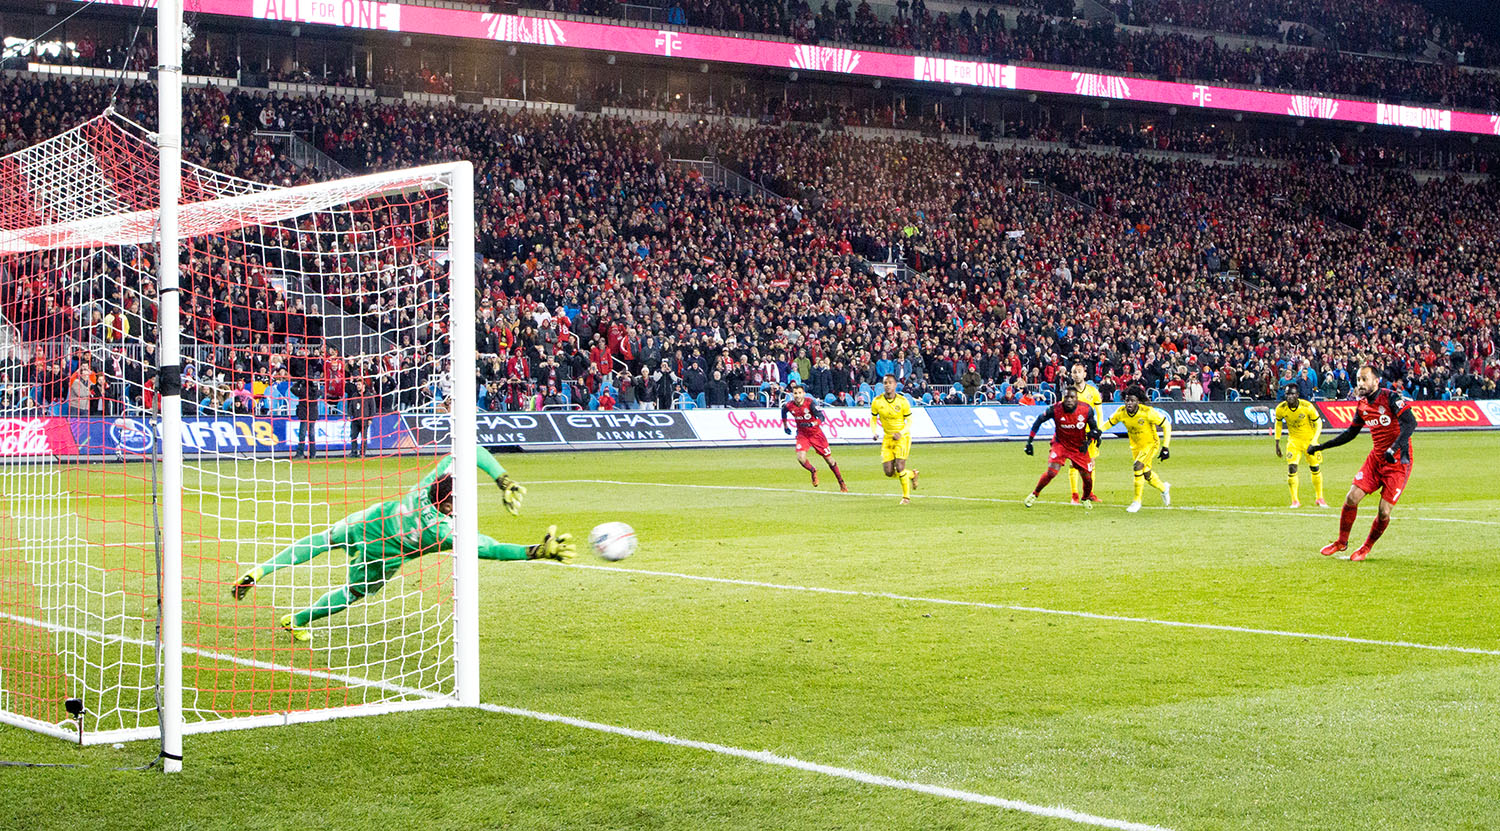 Victor Vazquez takes a penalty kick that is saved by Columbus Crew's goalkeeper Zack Steffen during the 2017 MLS Eastern Conference Final at BMO Field.Image by Dennis Marciniak of denMAR Media.